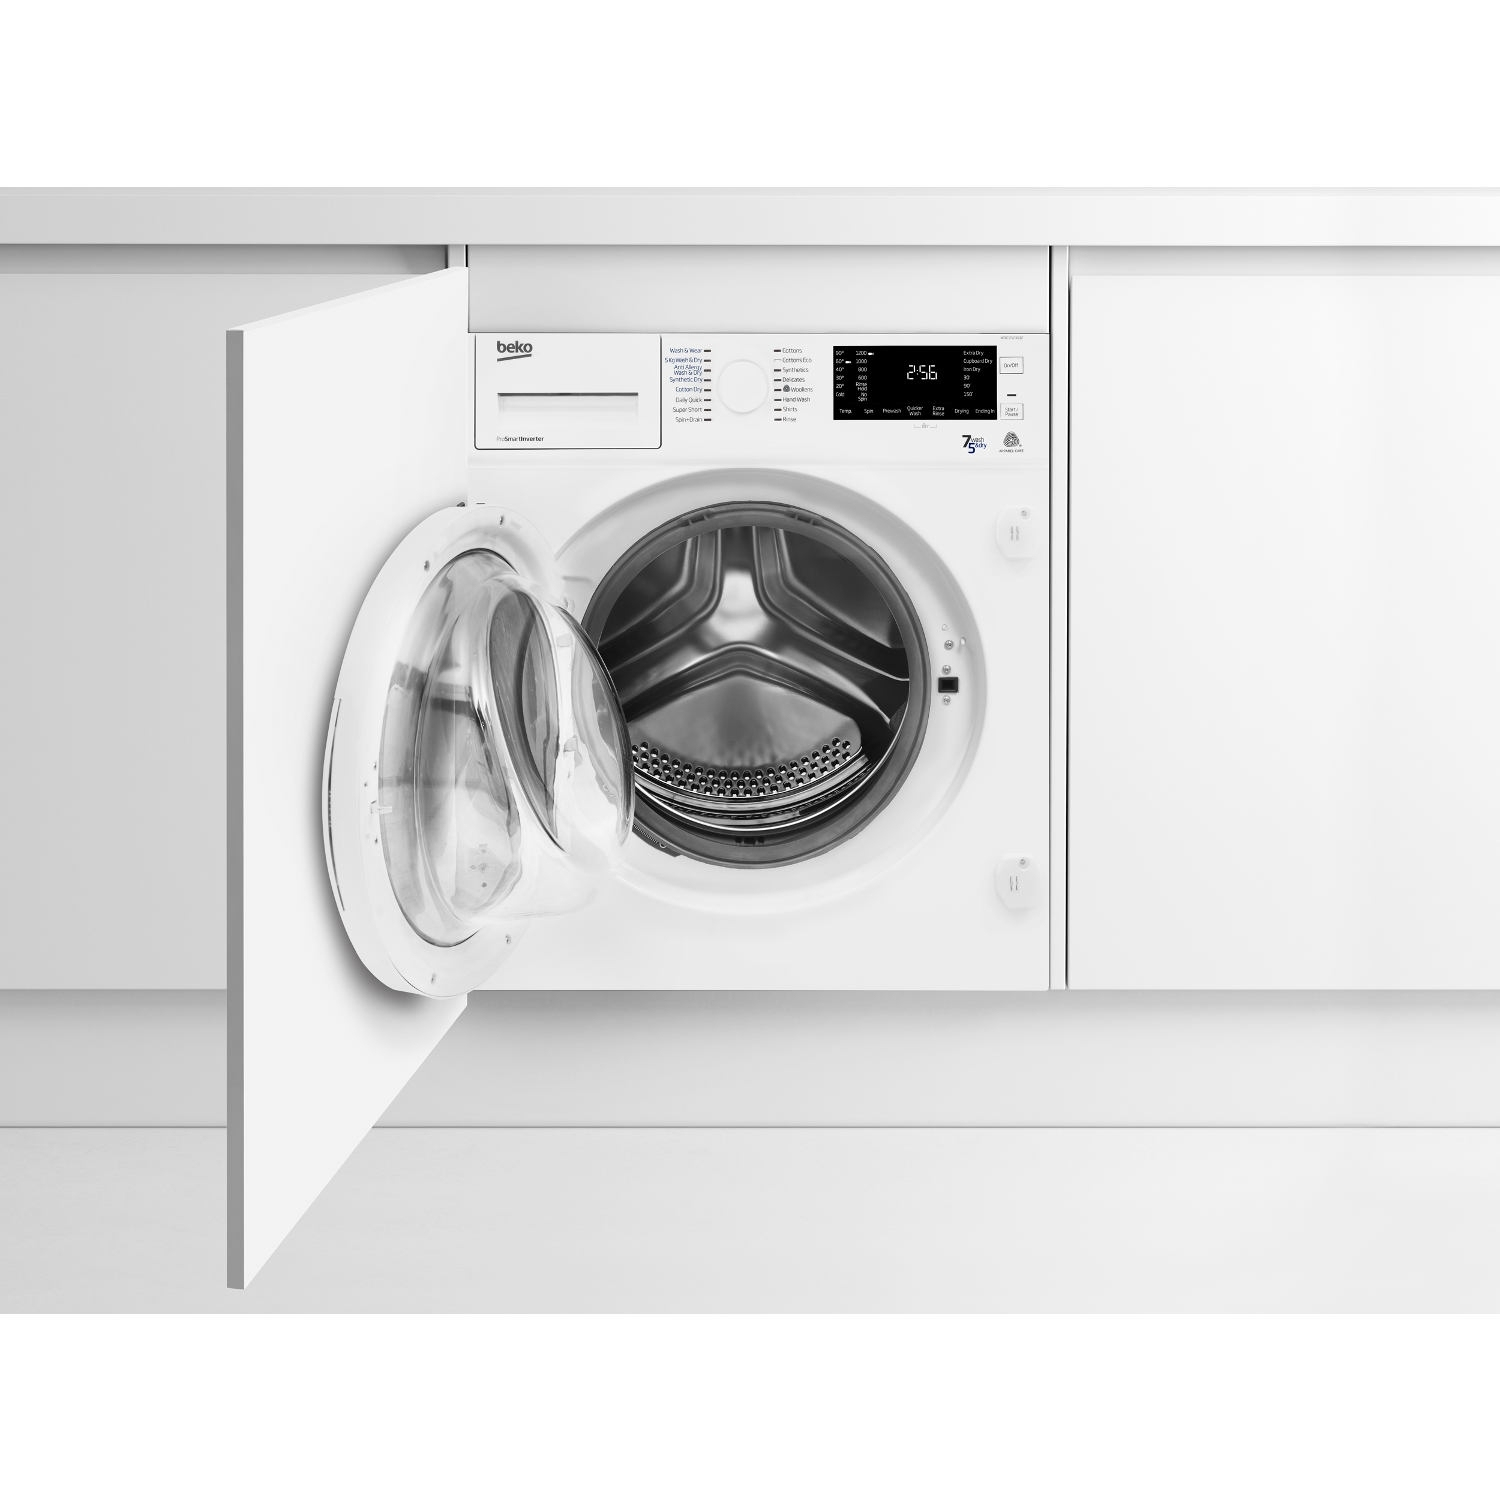 Beko Integrated 7kg/5kg 1200 Spin Washer Dryer - White - B Rated - 3